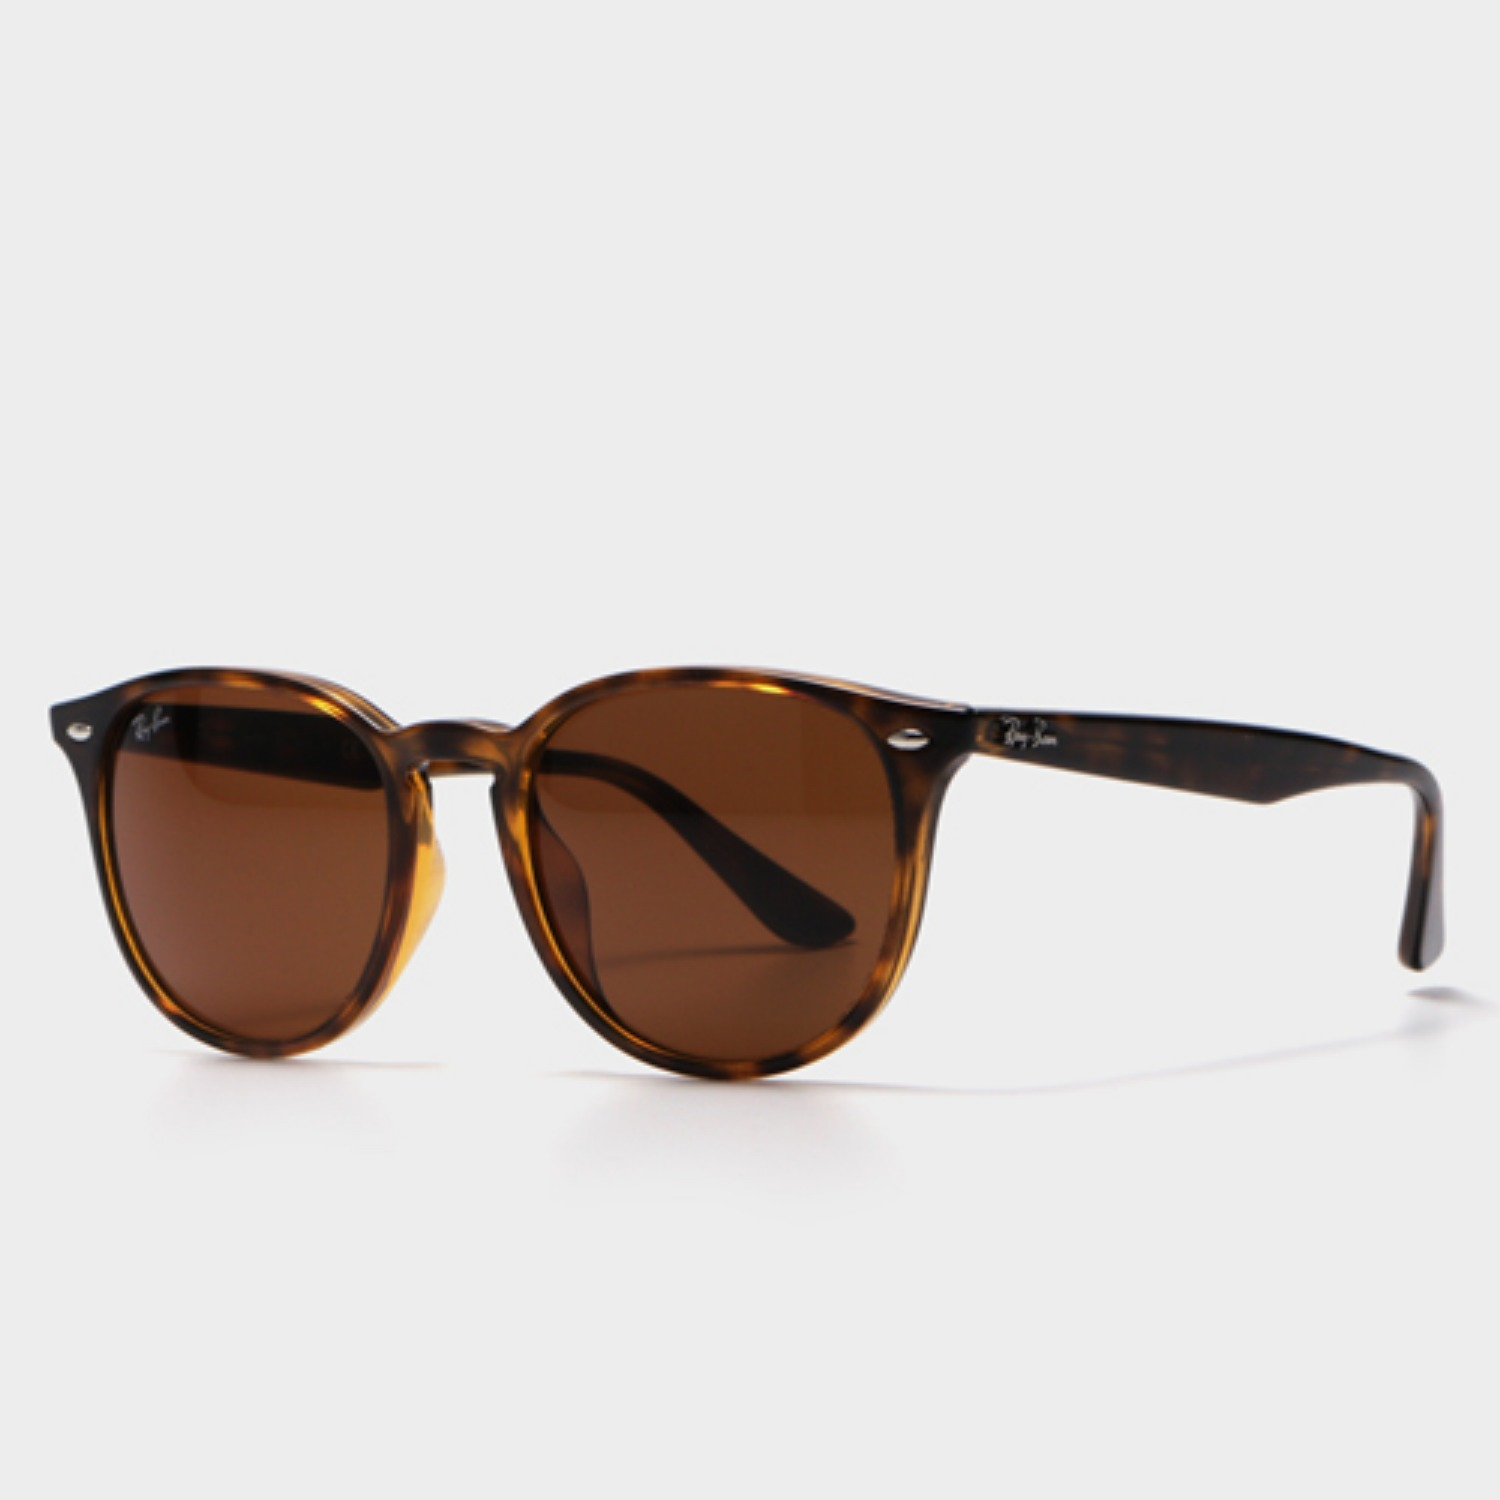 레이벤 RB4259F 710 73 (53) (Brown Lens)